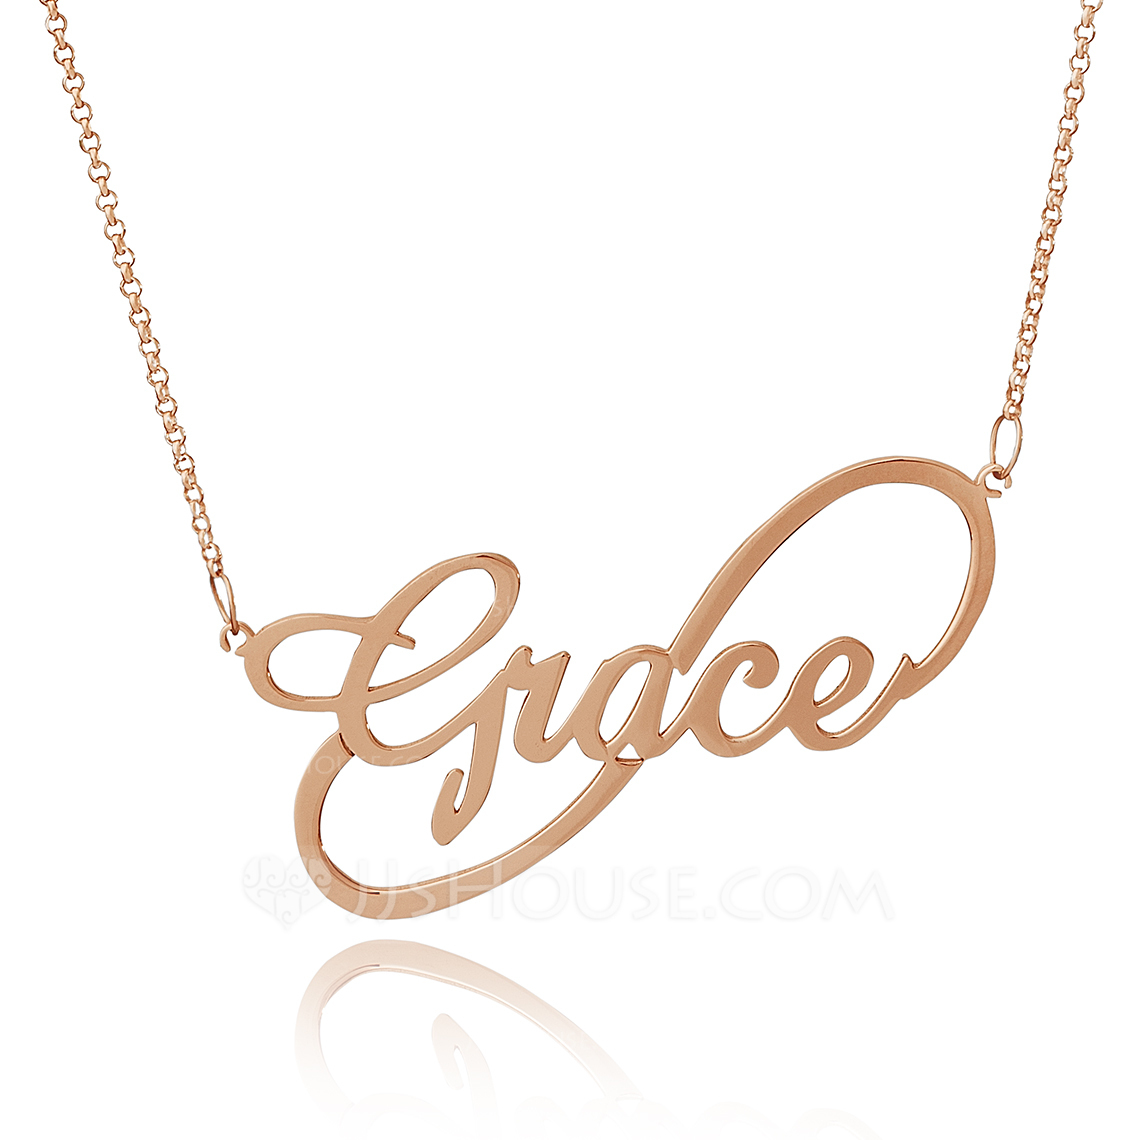 Custom 18k Rose Gold Plated Silver Infinity Name Necklace Infinity Name Necklace - Birthday Gifts Mother's Day Gifts